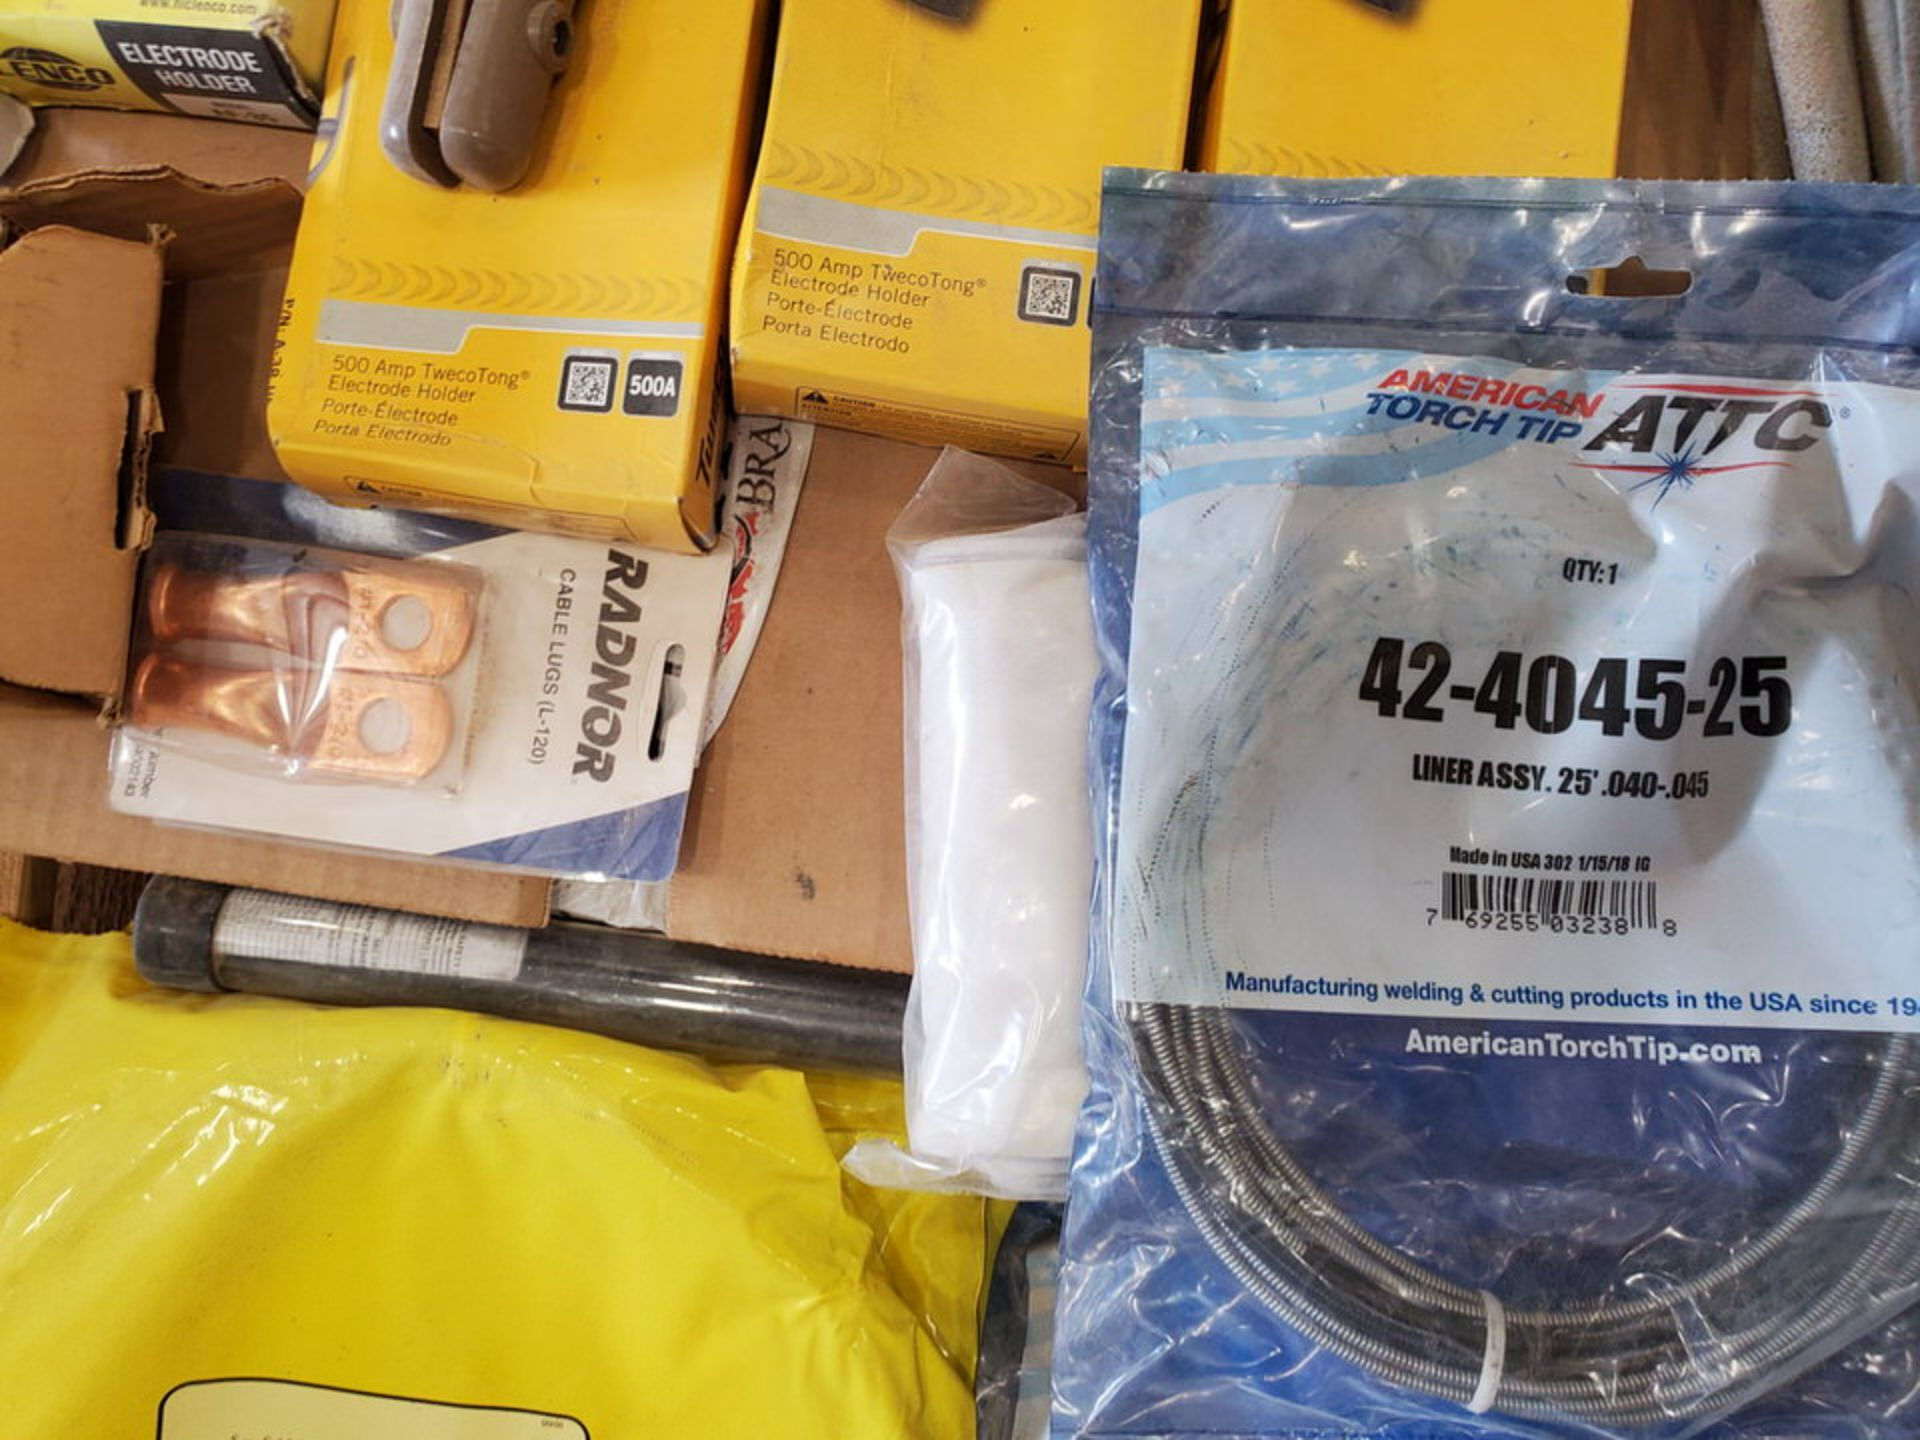 Assorted Welding Material To Include But Not Limited To: Electrode Holders, Gloves, Hoses, Rods, - Image 9 of 12